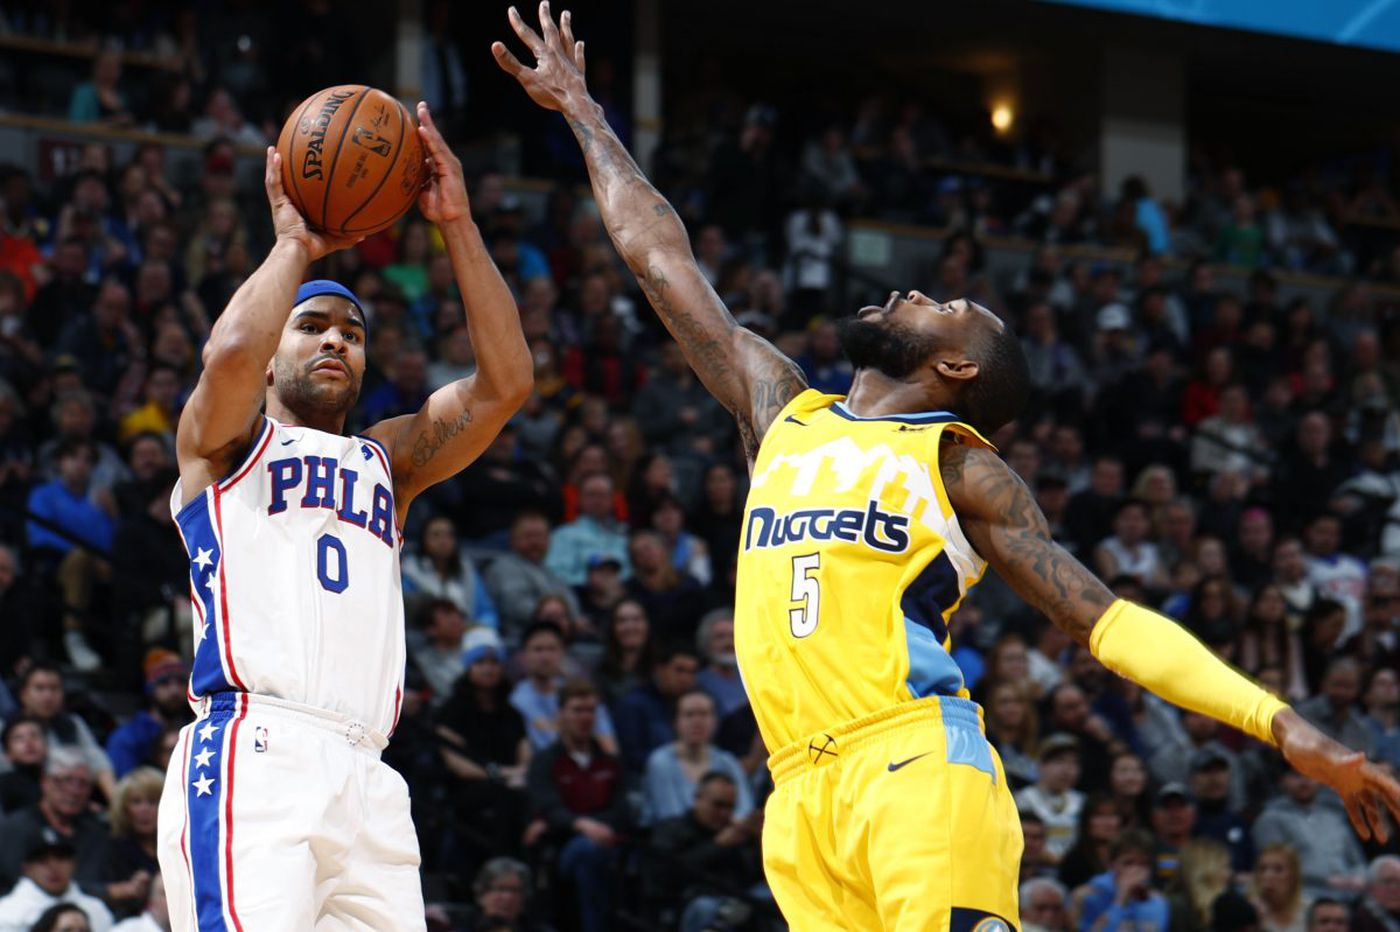 Jerryd Bayless leads Joel Embiid-less Sixers to 107-102 victory over Nuggets